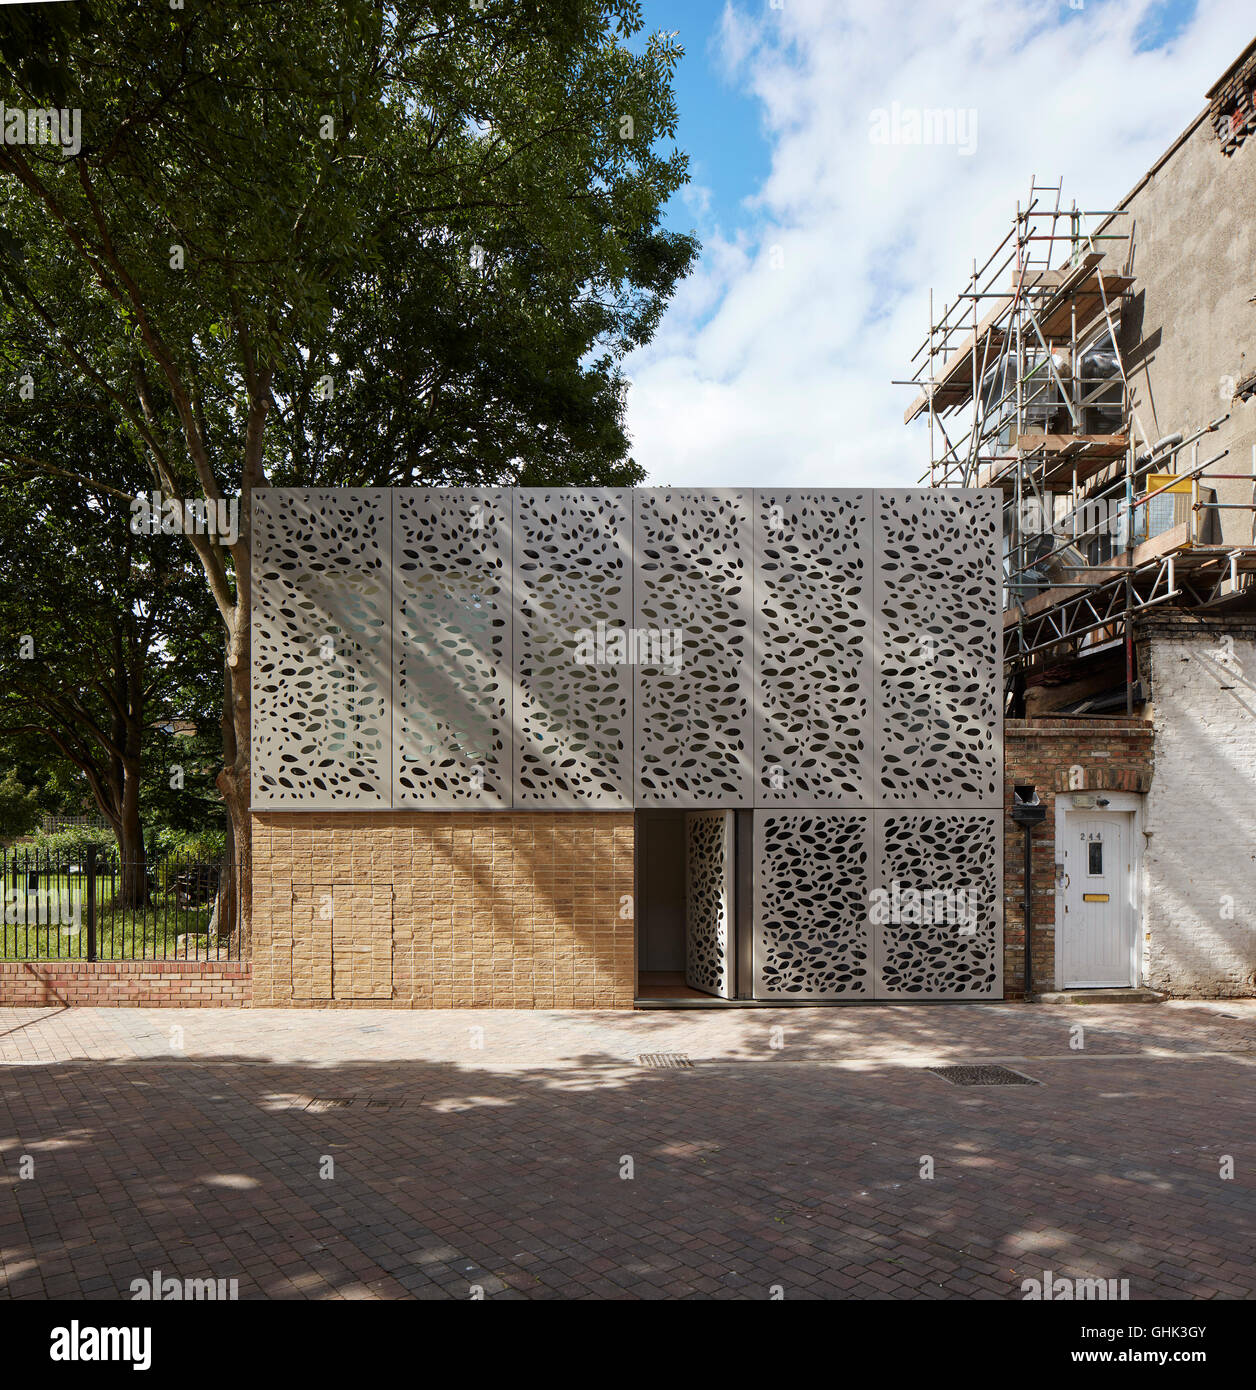 Front Elevation Of Houses In London : Perforated metal screen architecture stock photos